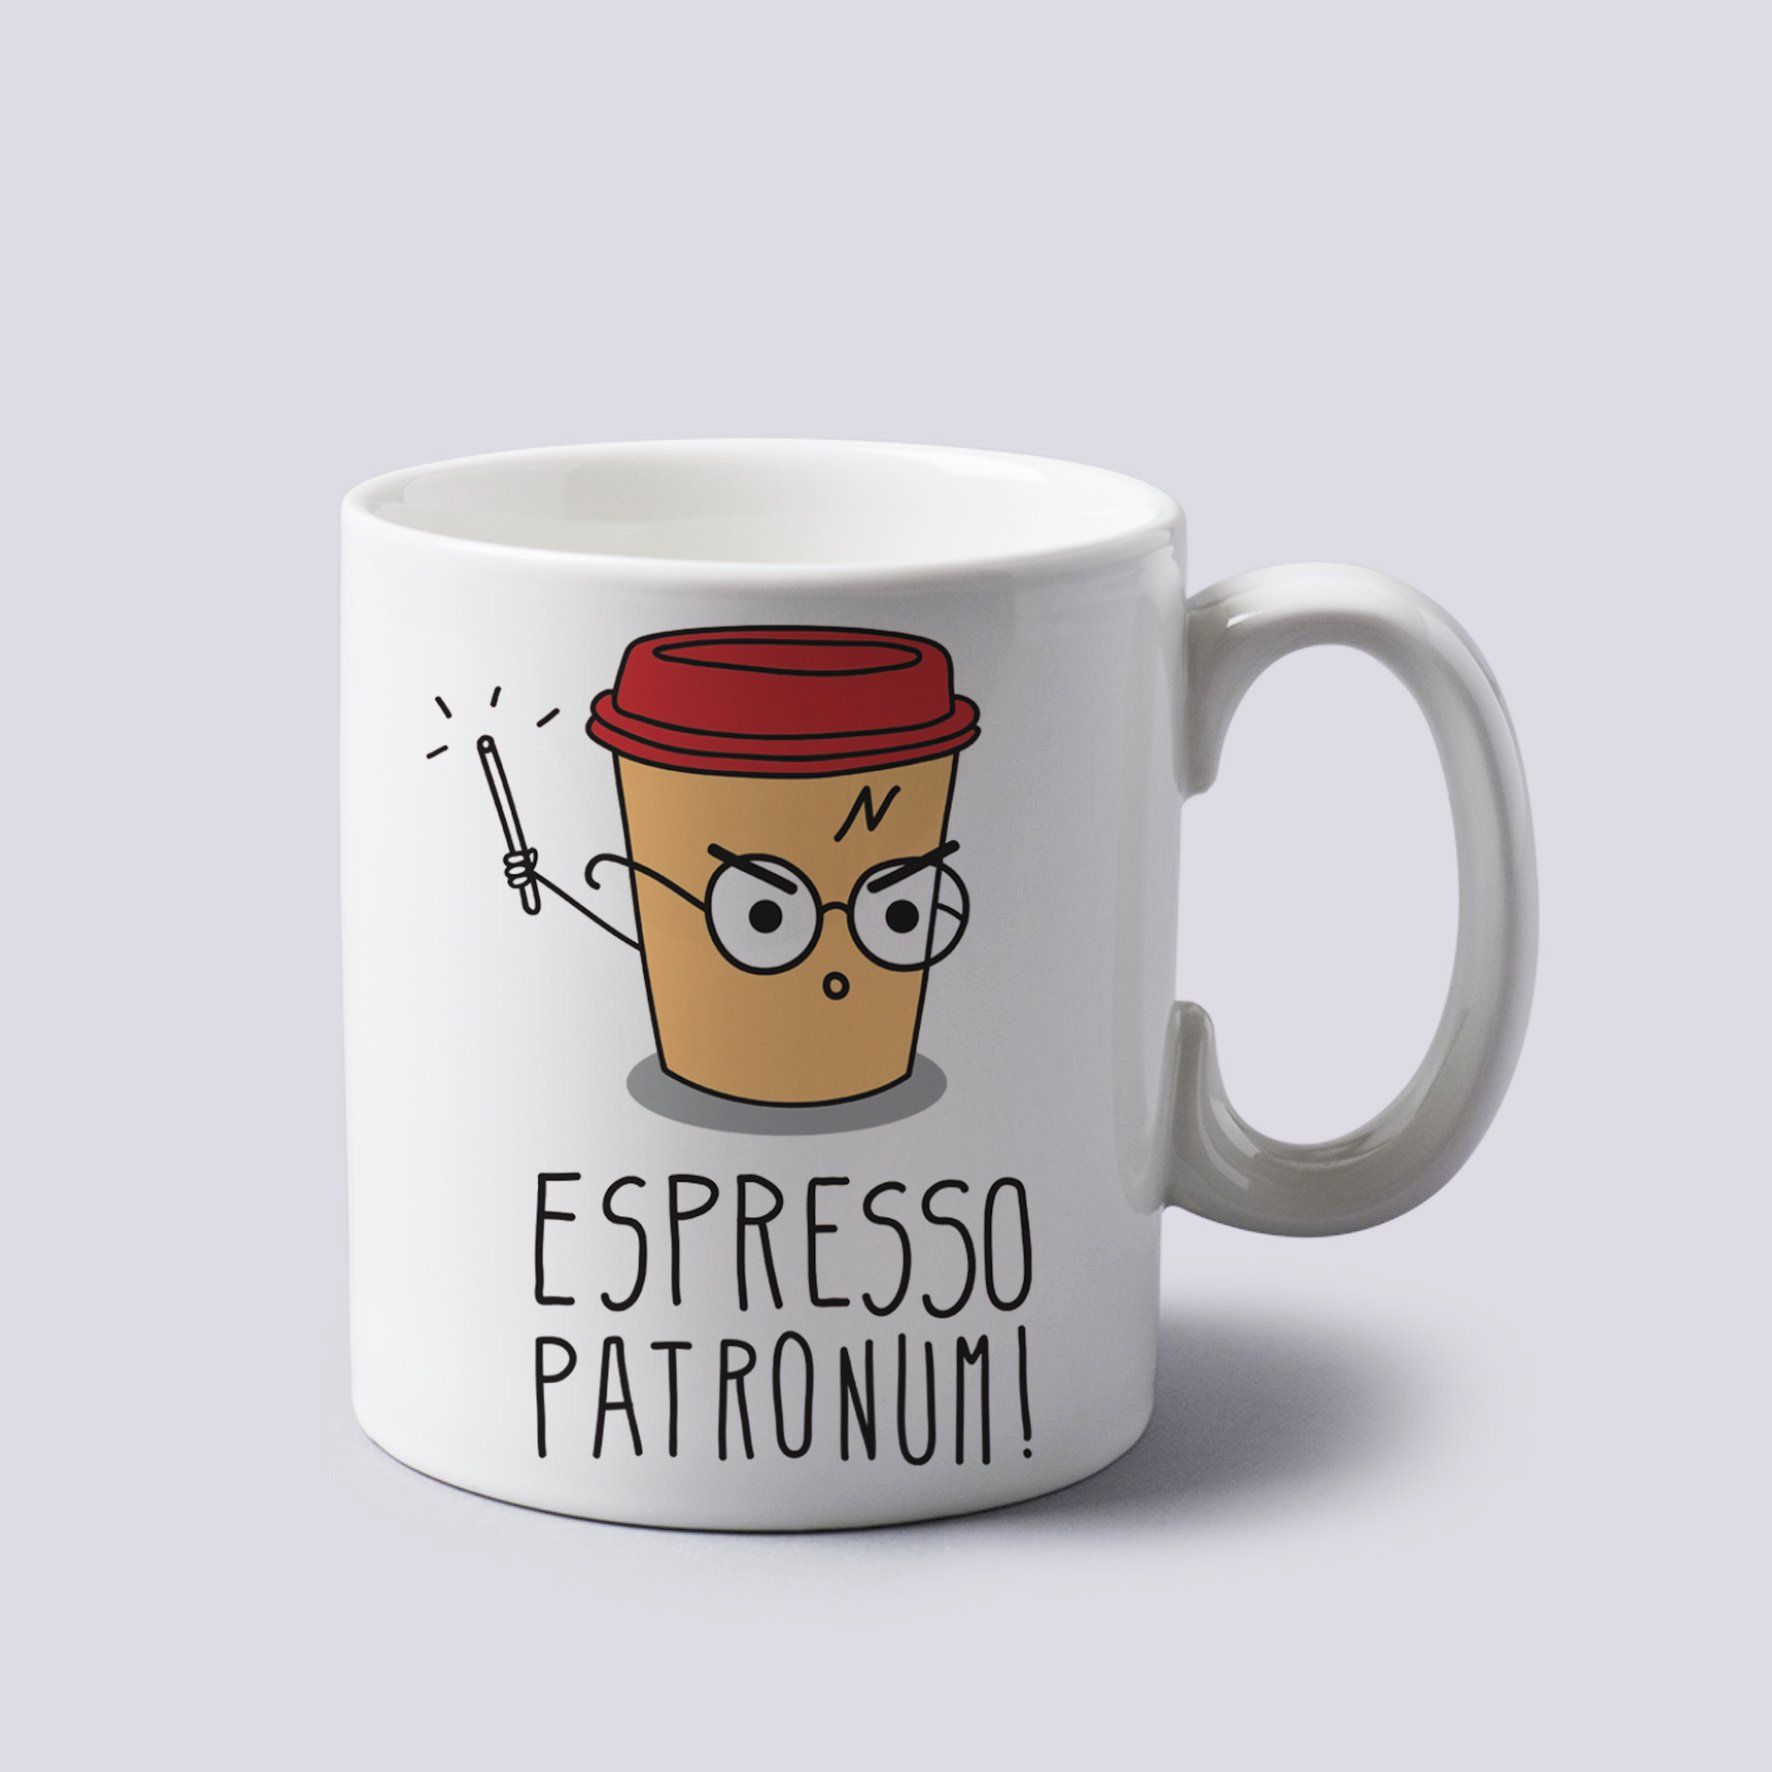 Amazon Com Espresso Patronum Harry Potter Funny Cartoon